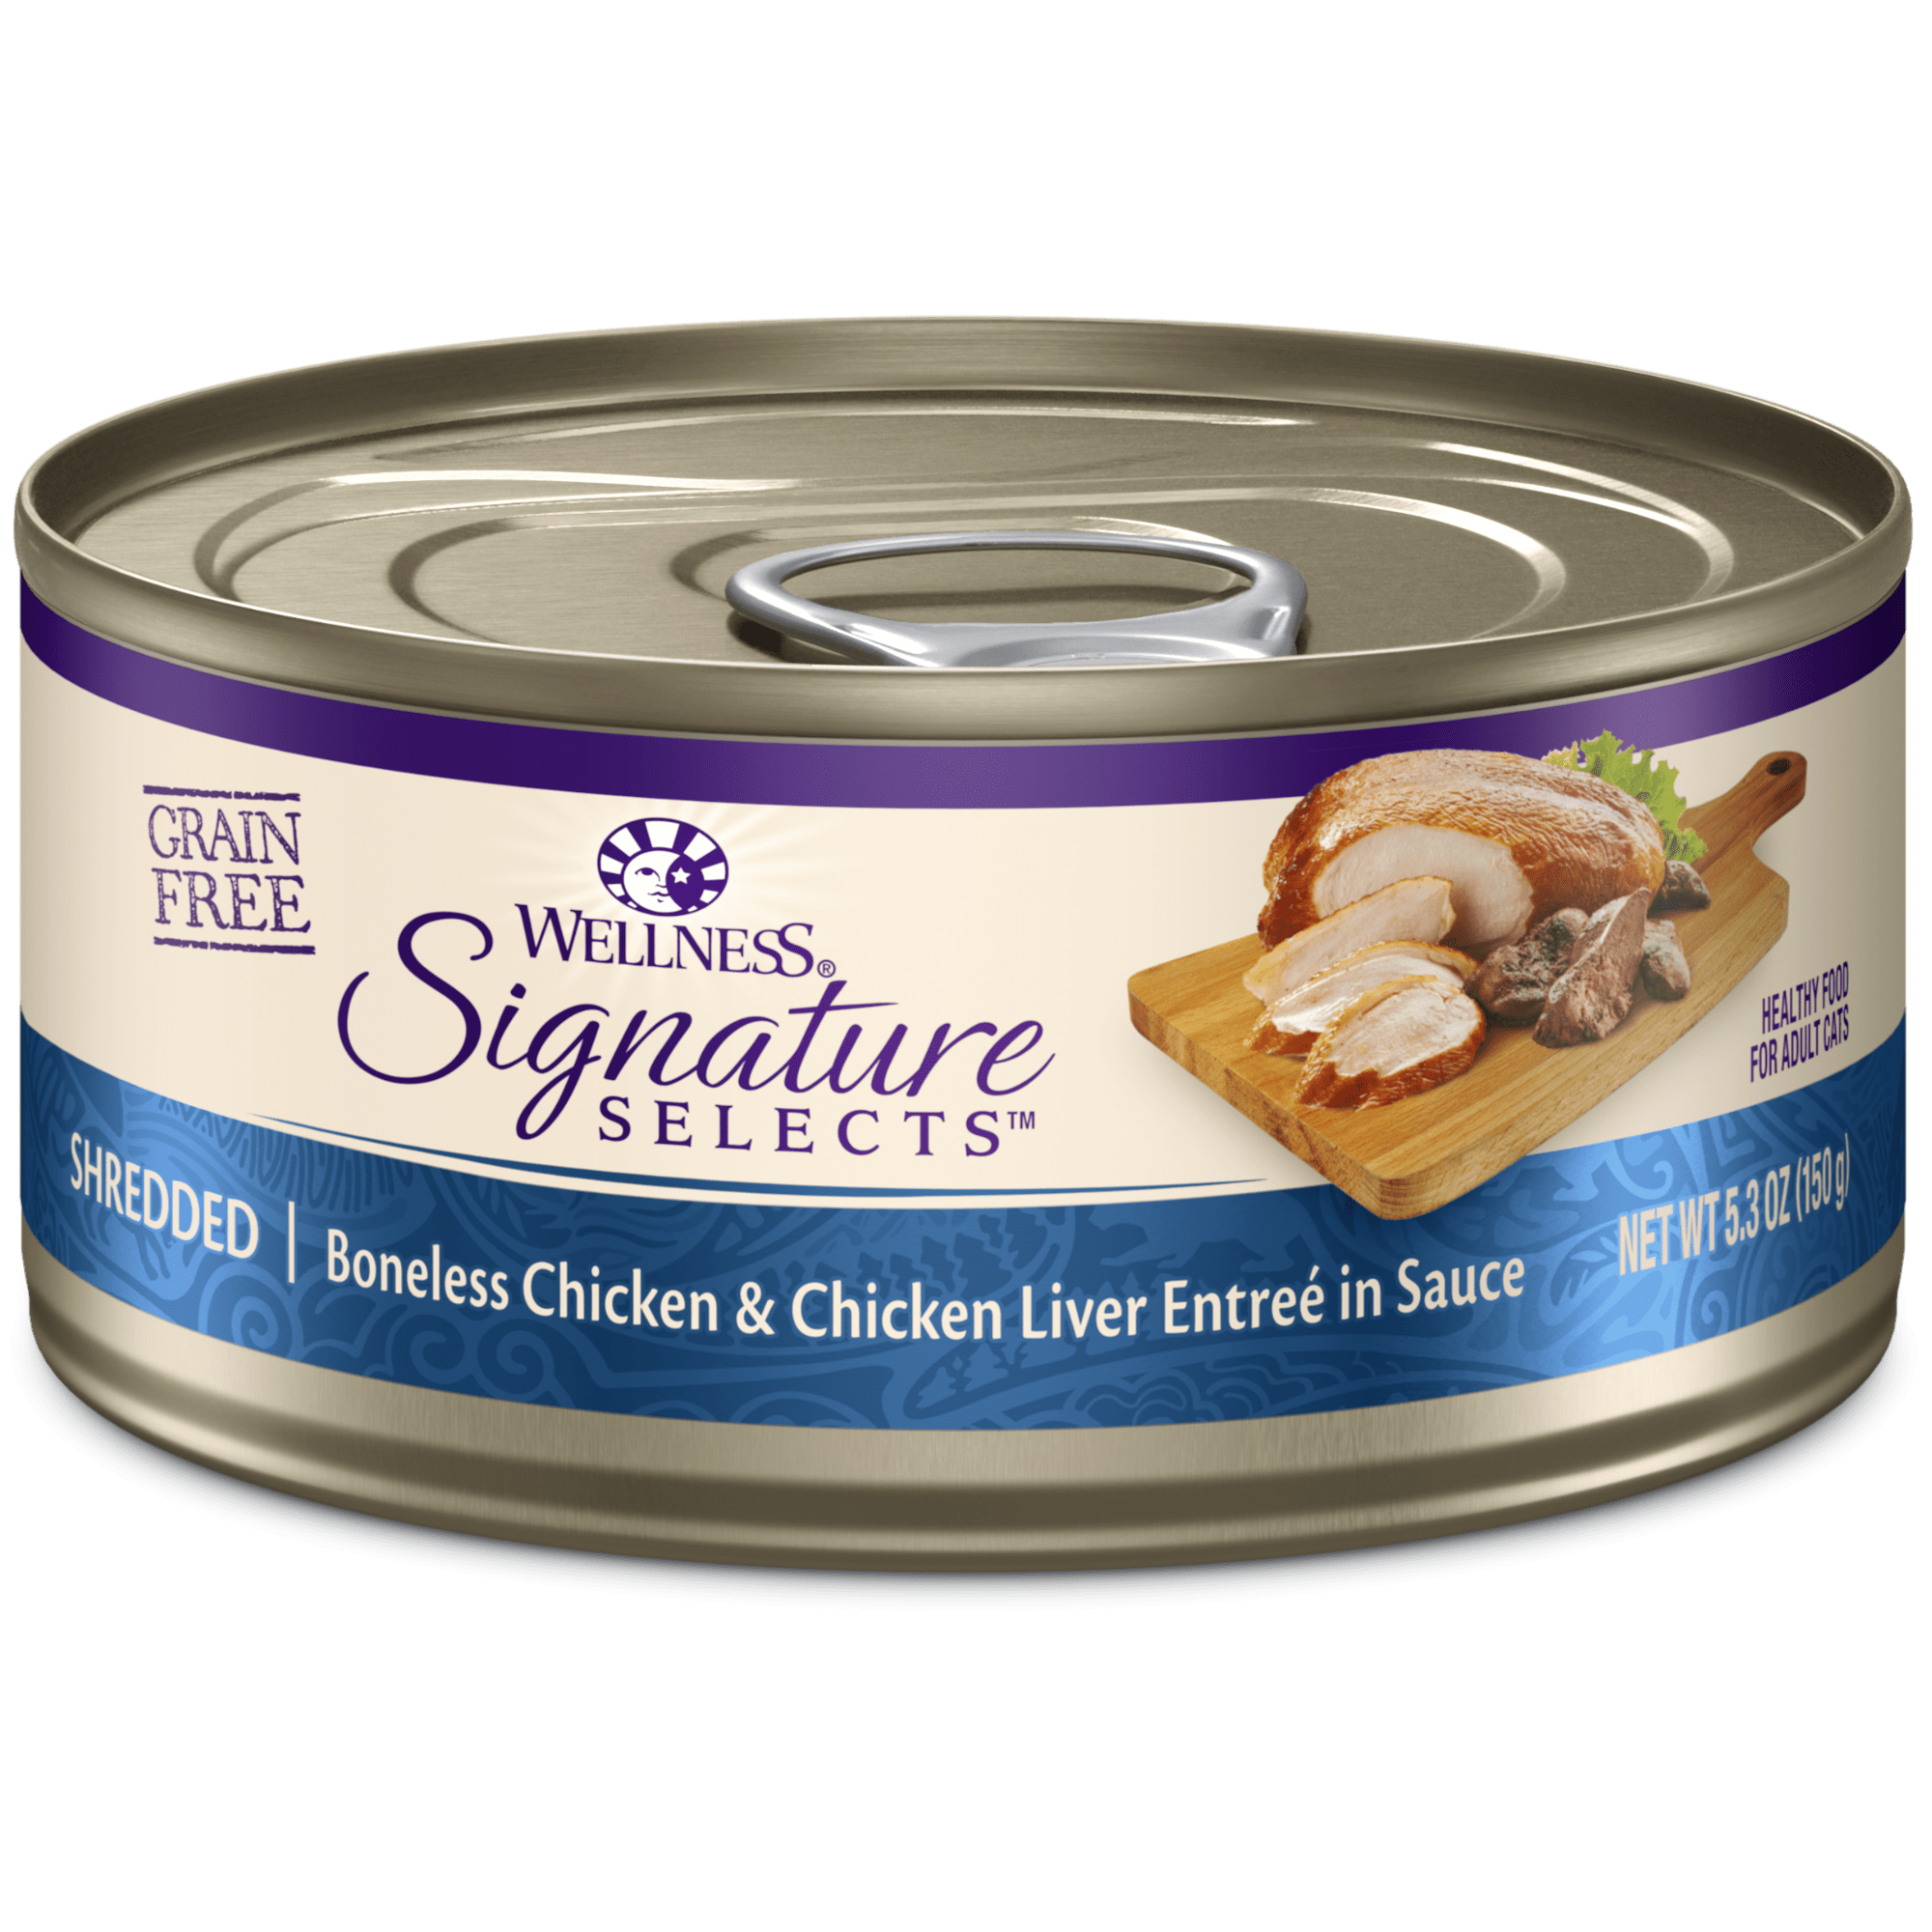 Wellness pet food wet cat food in singapore signature selects shredded white meat chicken with chicken liver entre in sauce forumfinder Choice Image